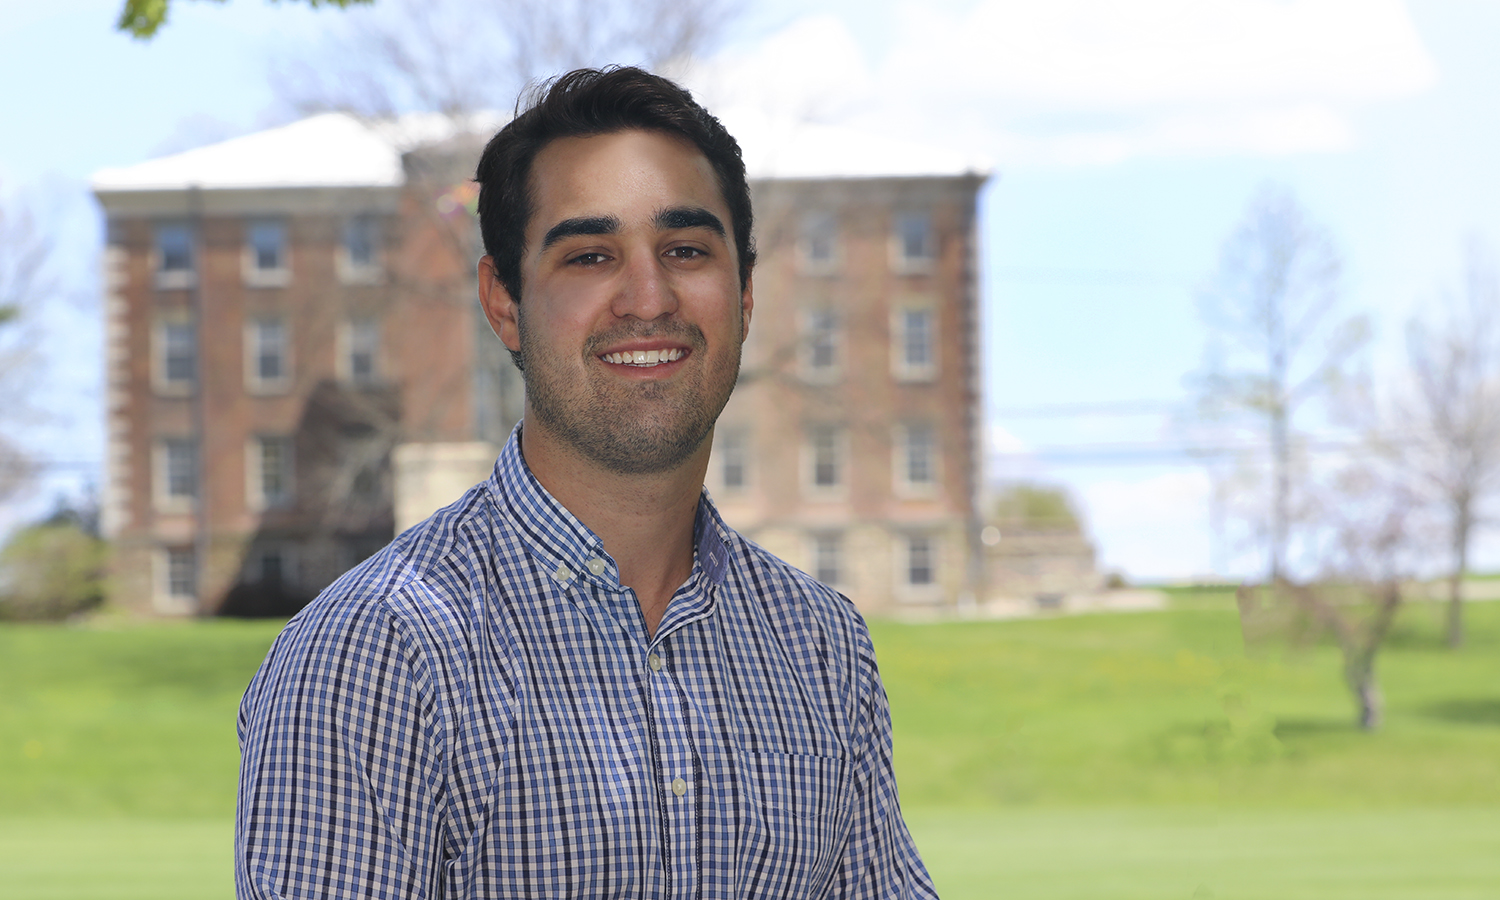 Through the Guarenteed Summer Internship program, John Mainella '19 will travel to Tel Aviv, Israel to intern as an athletic trainer with World Lacrosse Athletics.